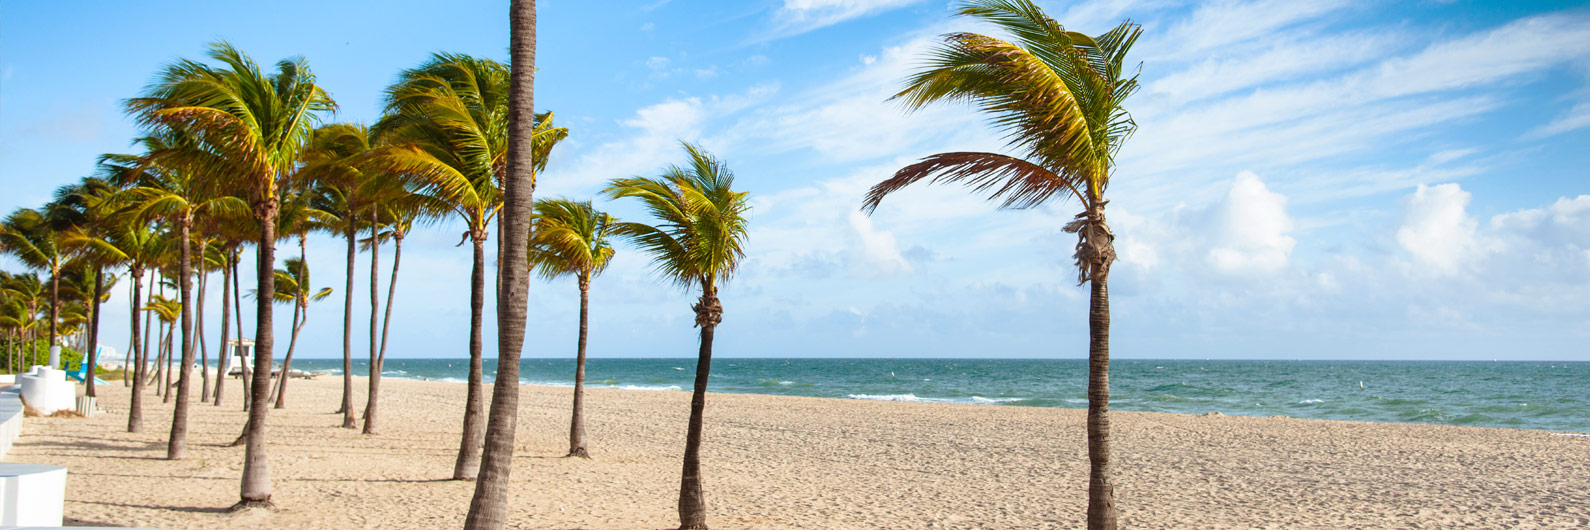 Book Flights To West Palm Beach Pbi Frontier Airlines